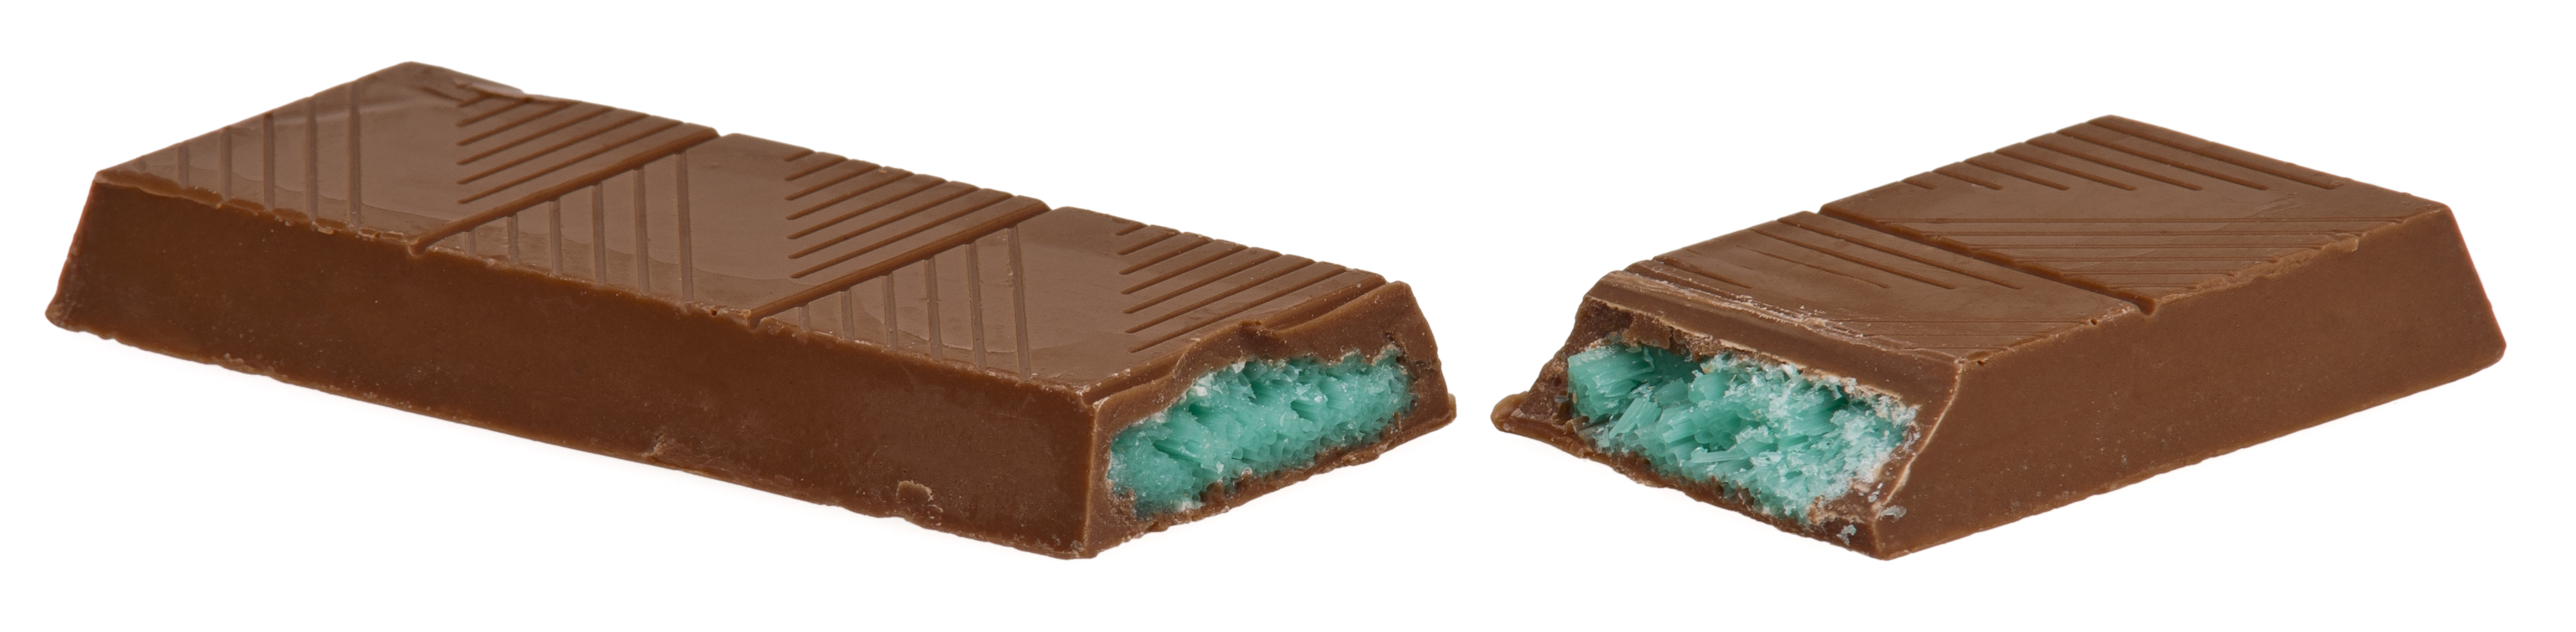 Peppermint Crisp Chocolate